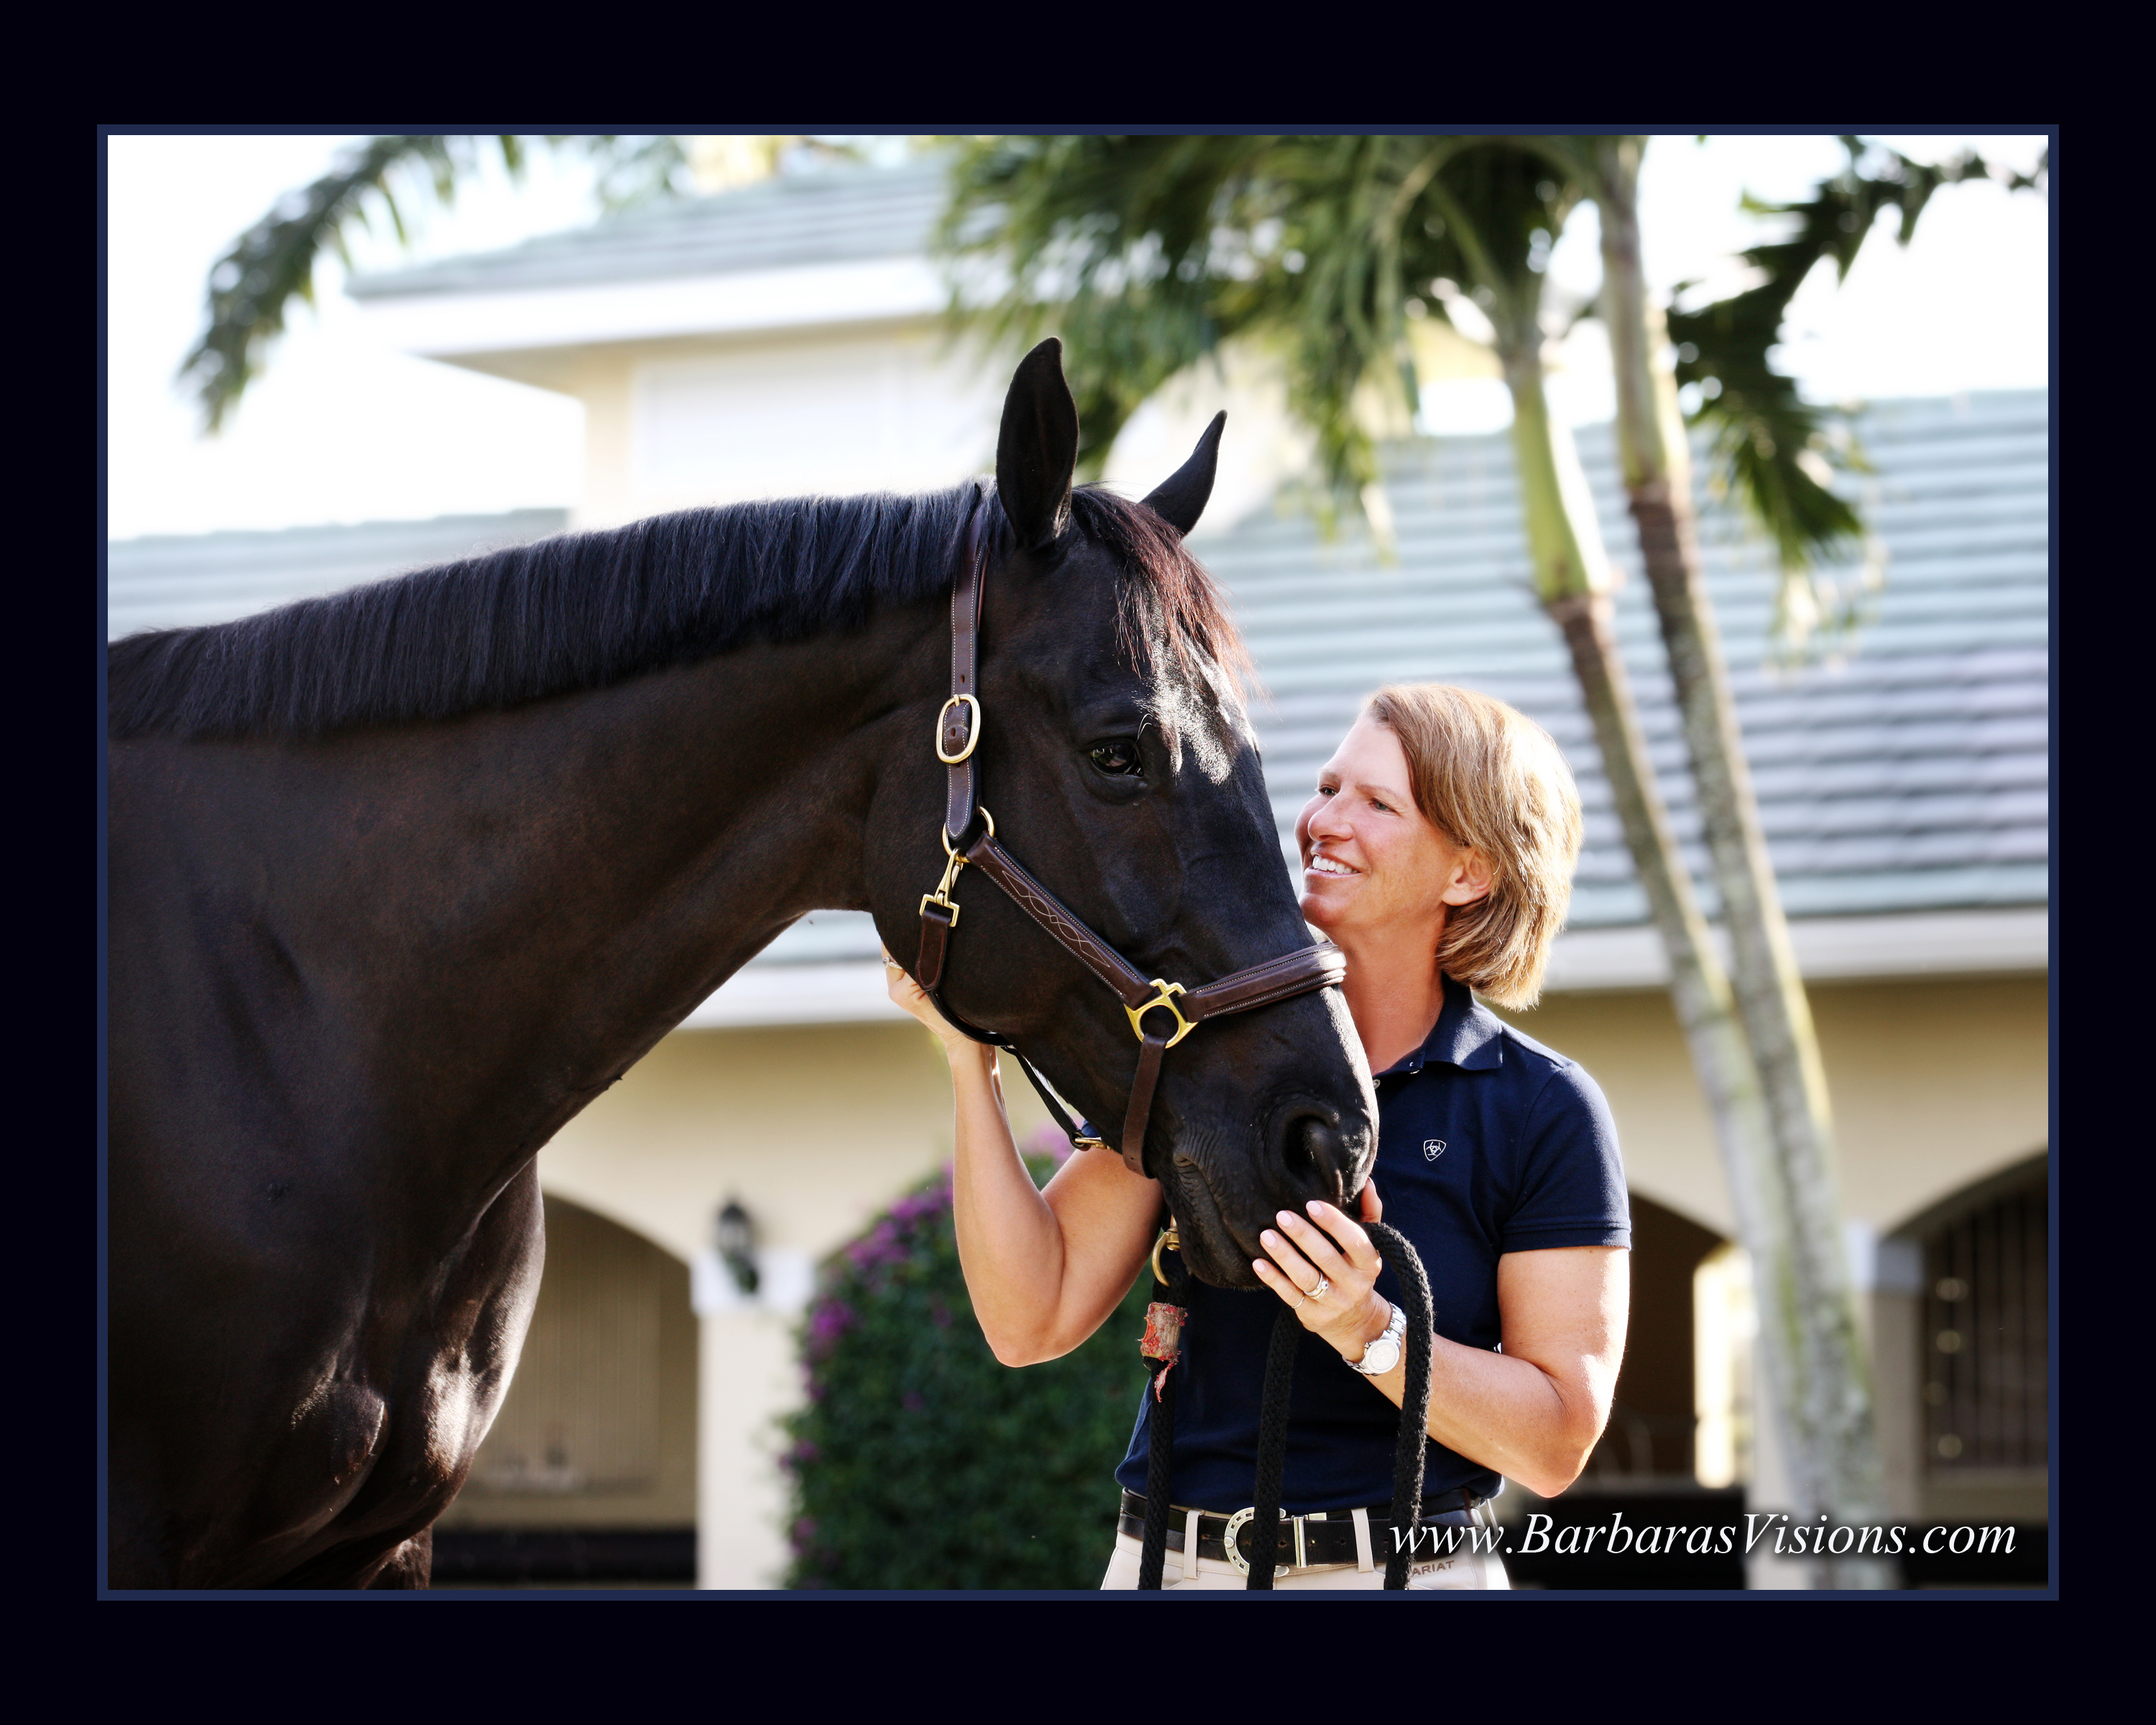 Beezie with Cortes 'C', owned by Abigail Wexner, in Wellington, Florida. (Photo by Barbara Bower, Barbarasvisions.com)